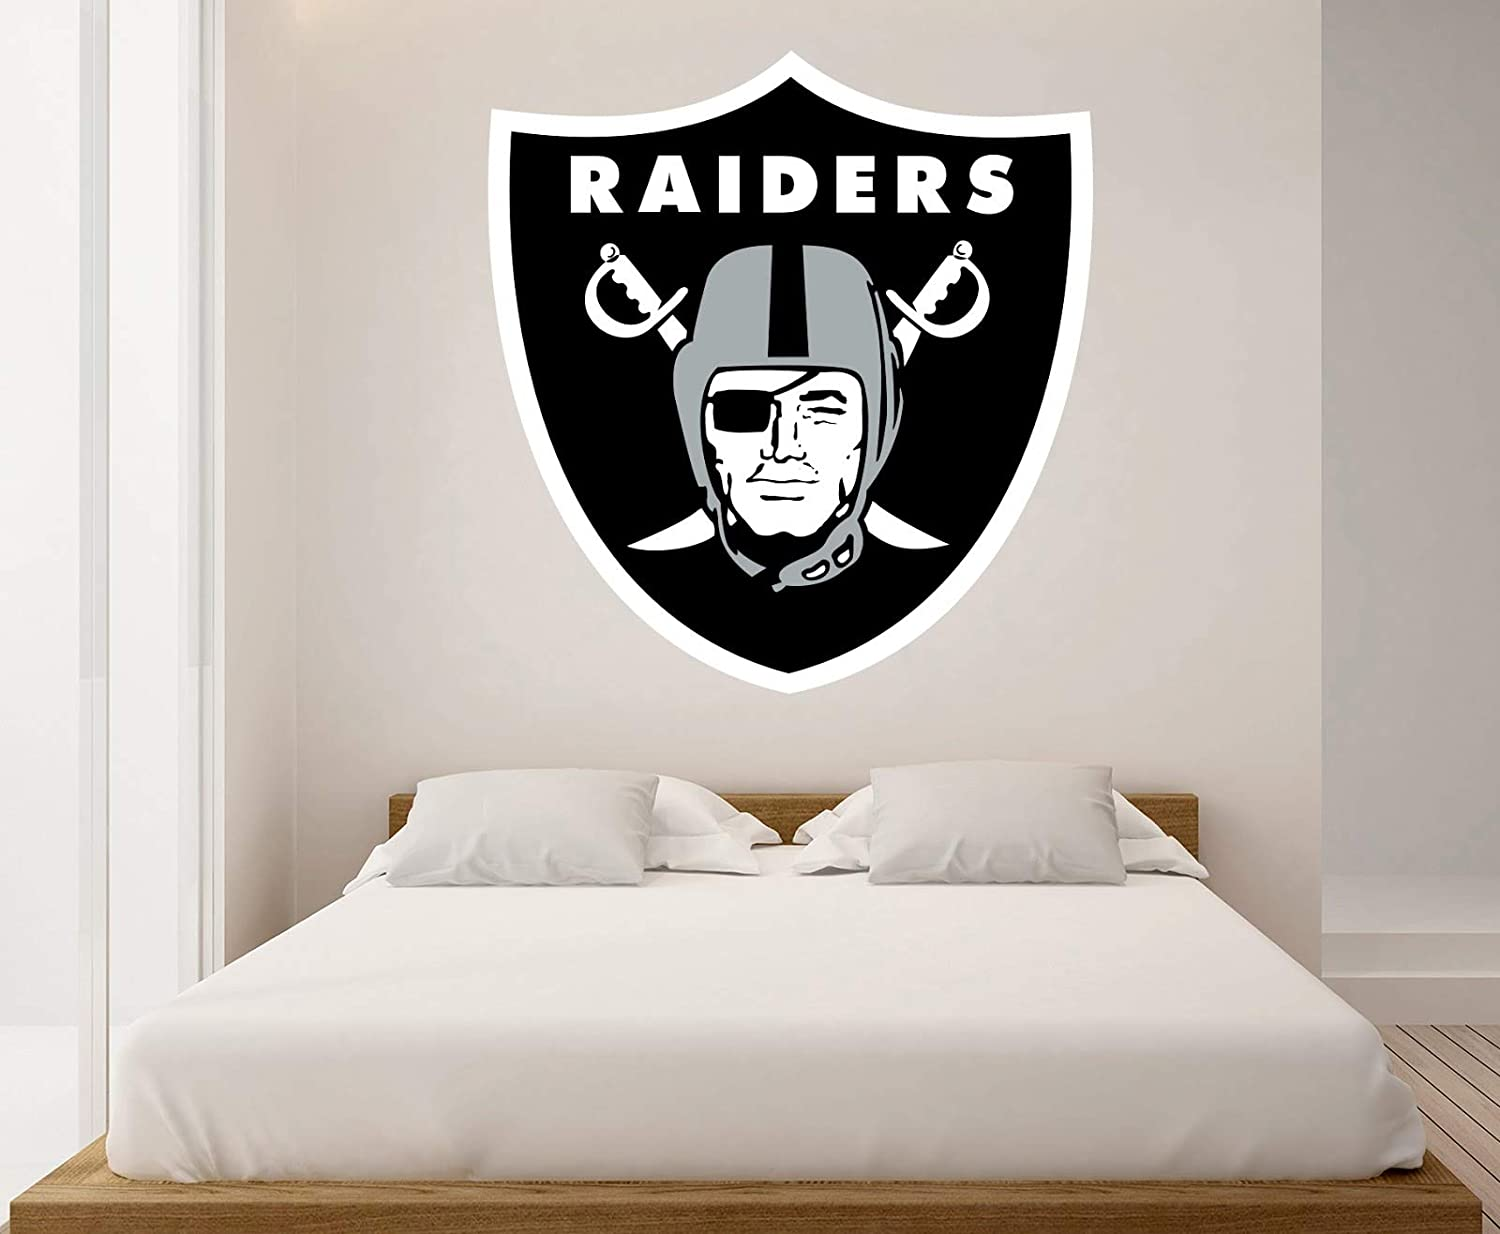 American Football Team Logo Raiders - Removable Wall Decal Vinyl for Home Decoration (20x21)